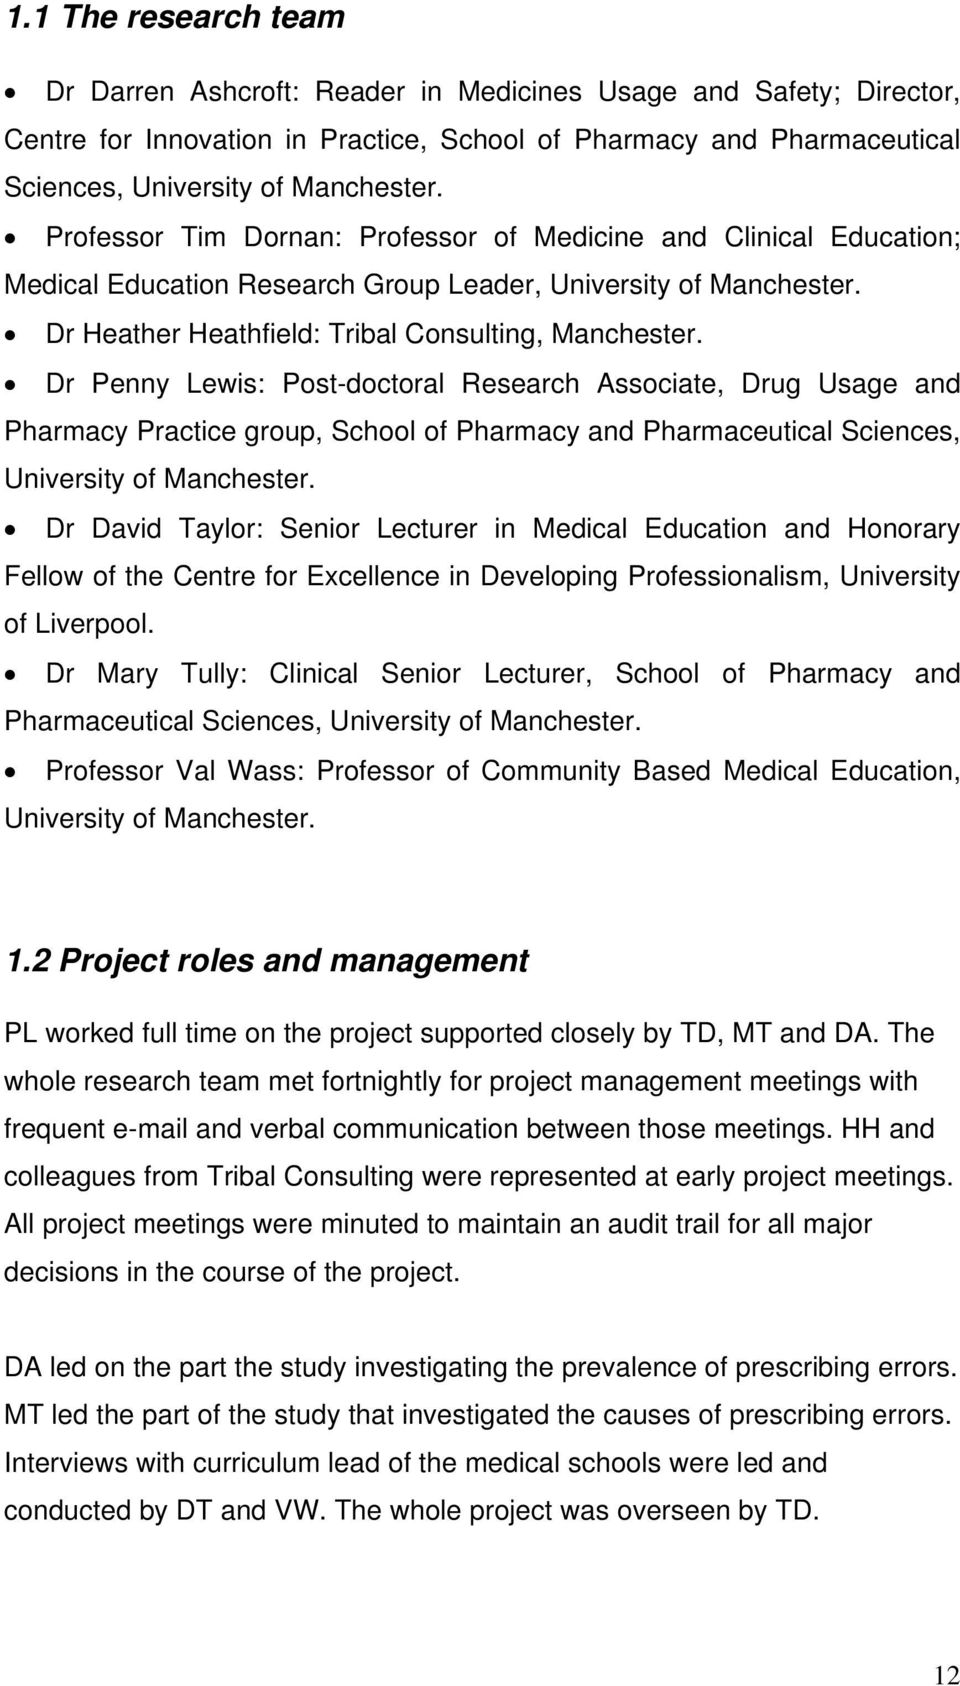 Dr Penny Lewis: Post-doctoral Research Associate, Drug Usage and Pharmacy Practice group, School of Pharmacy and Pharmaceutical Sciences, University of Manchester.